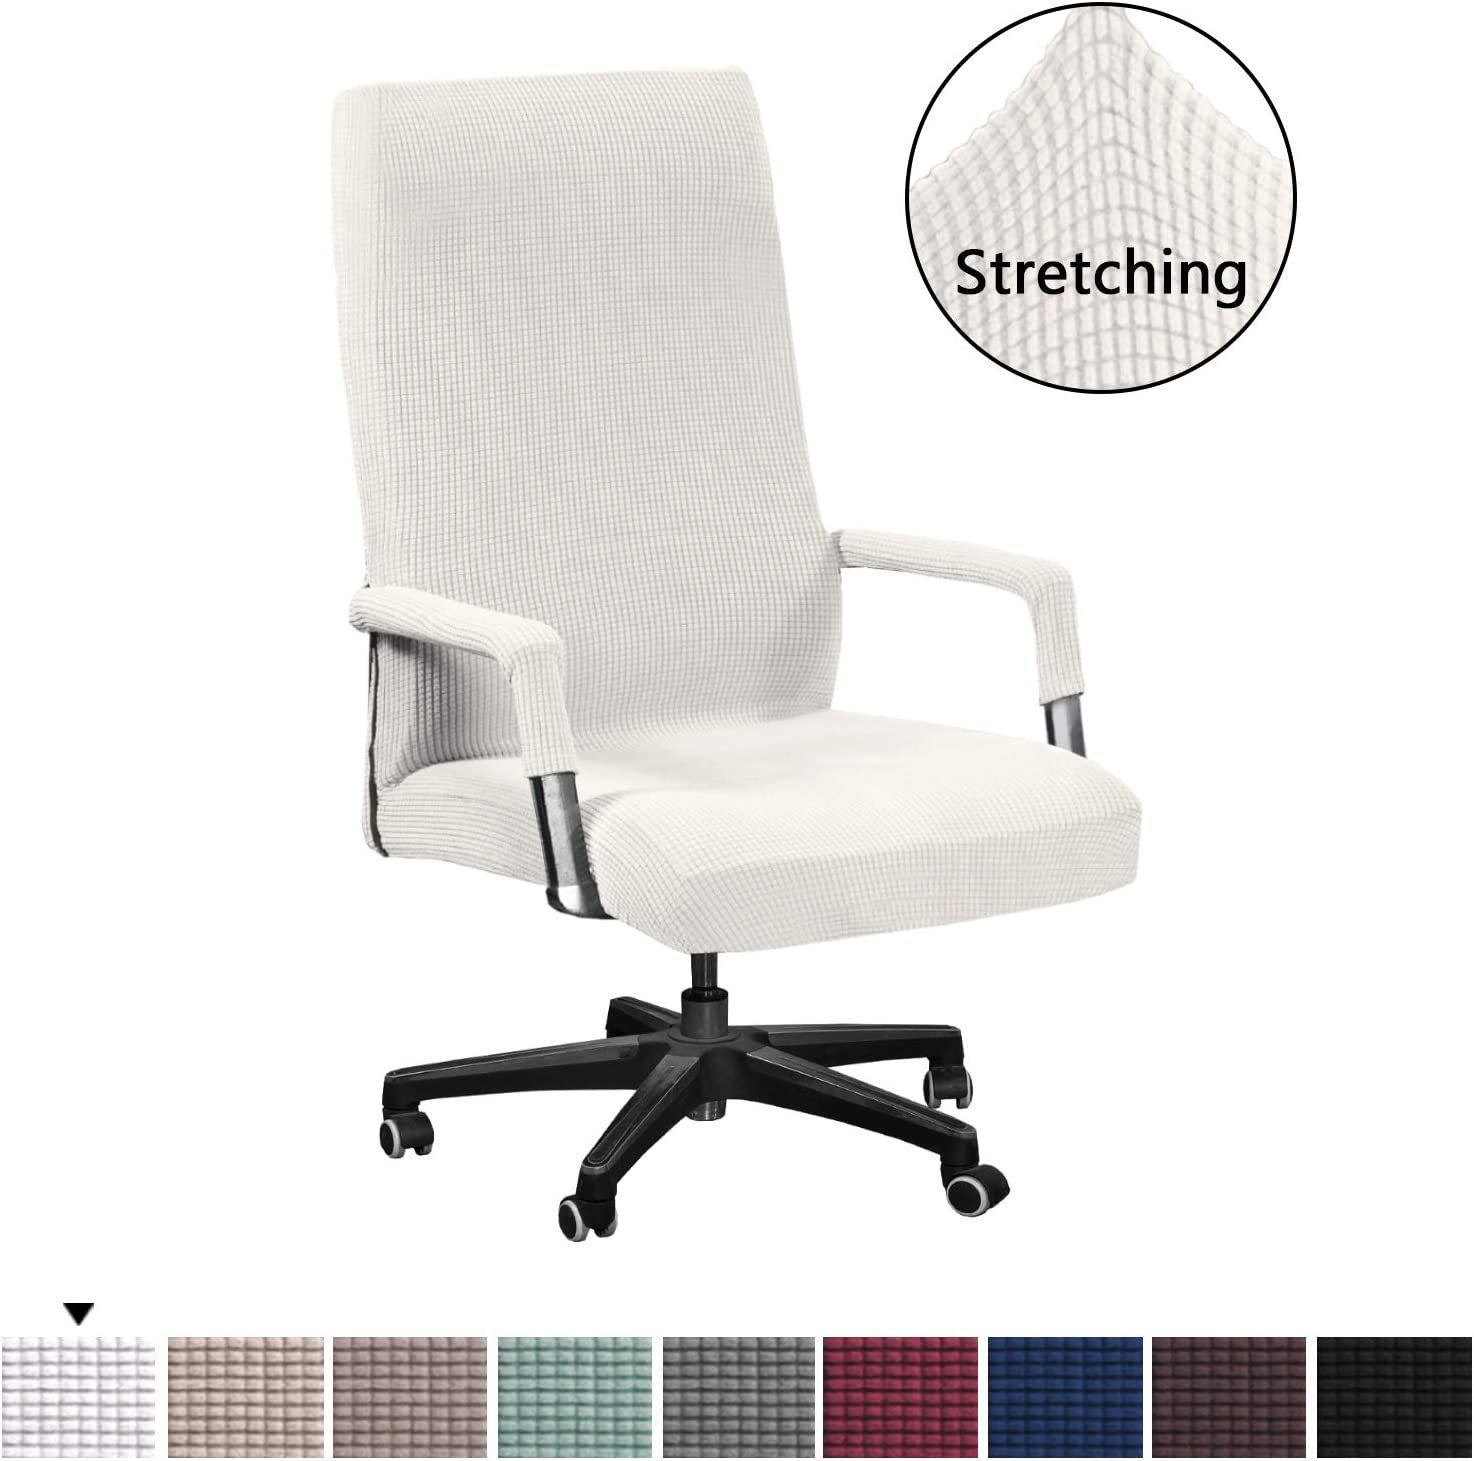 Stretch Computer Office Chair Covers for Stretch Rotating Mid Back Chair Slipcovers Cover Skid Resistance Furniture Protector Jacquard Spandex Form Fitted Slipcovers, Standard, Ivory White